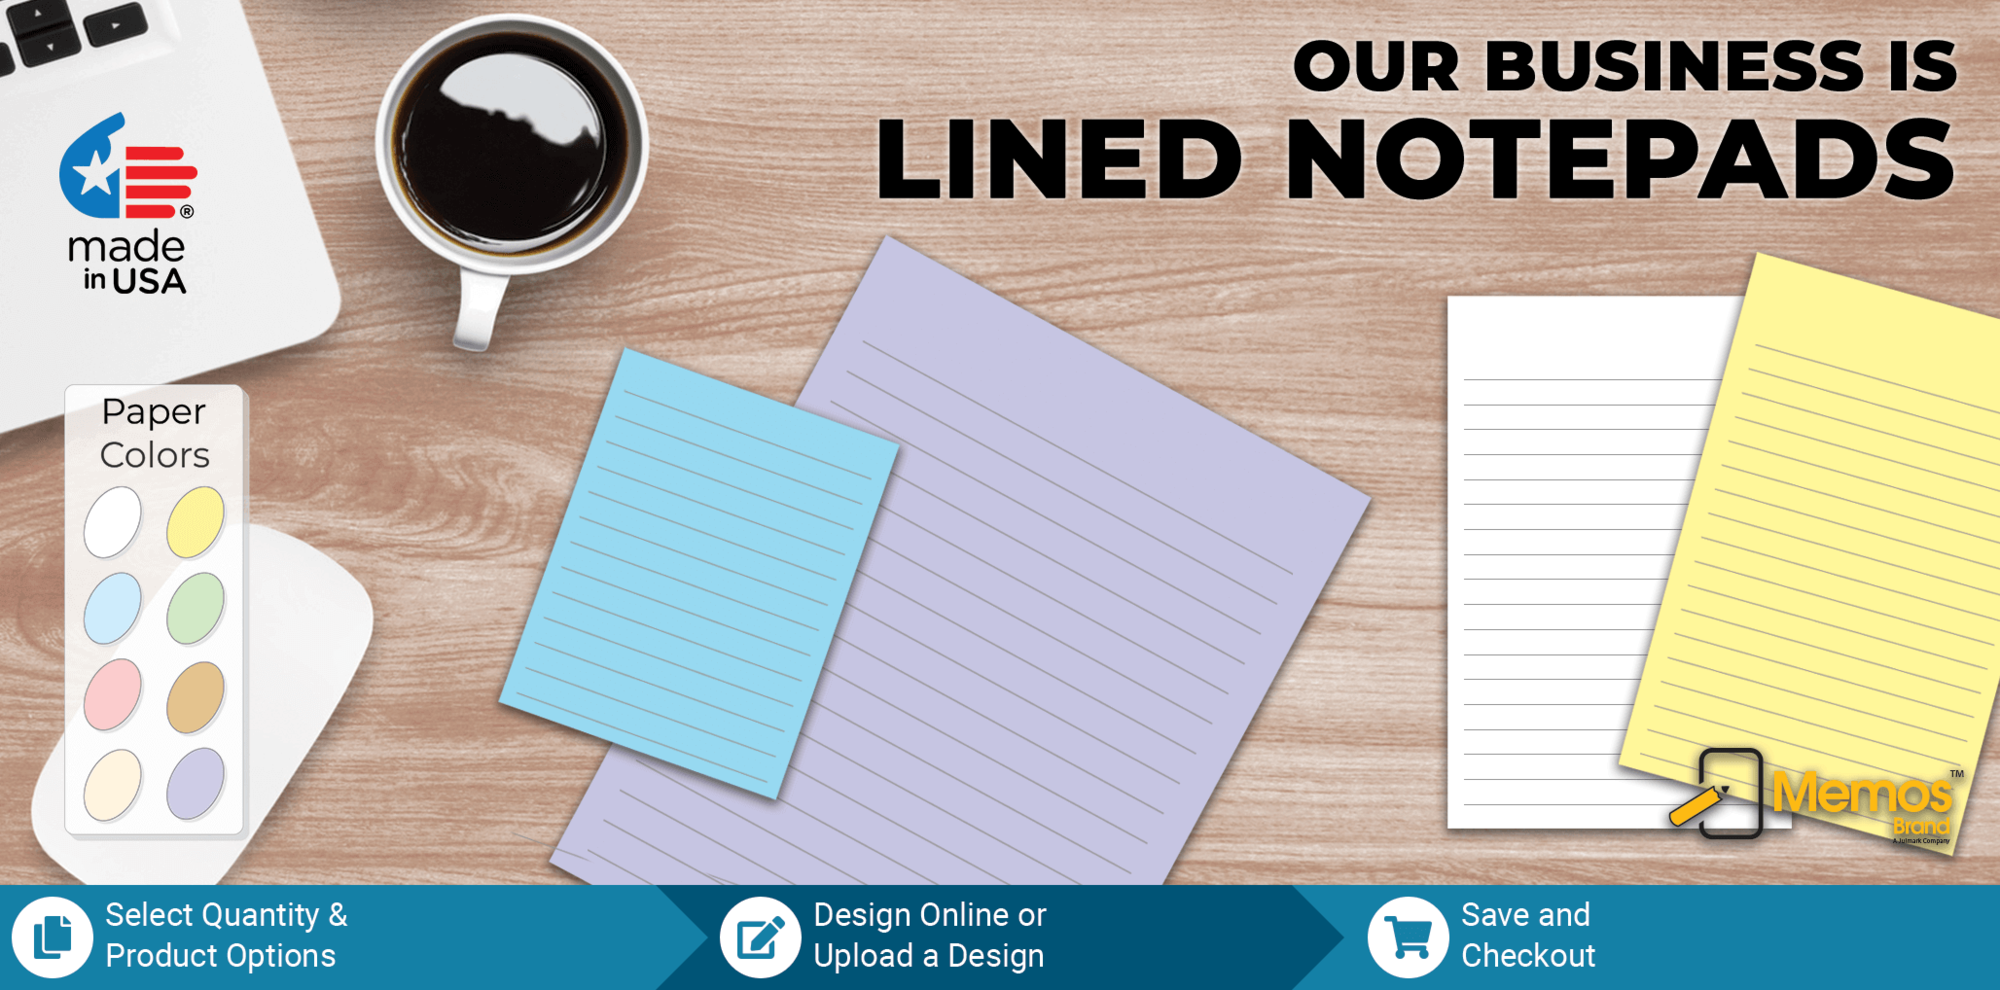 https://printpps.com/images/products_gallery_images/Lined_Notepads_Product_Page_Banner85.png